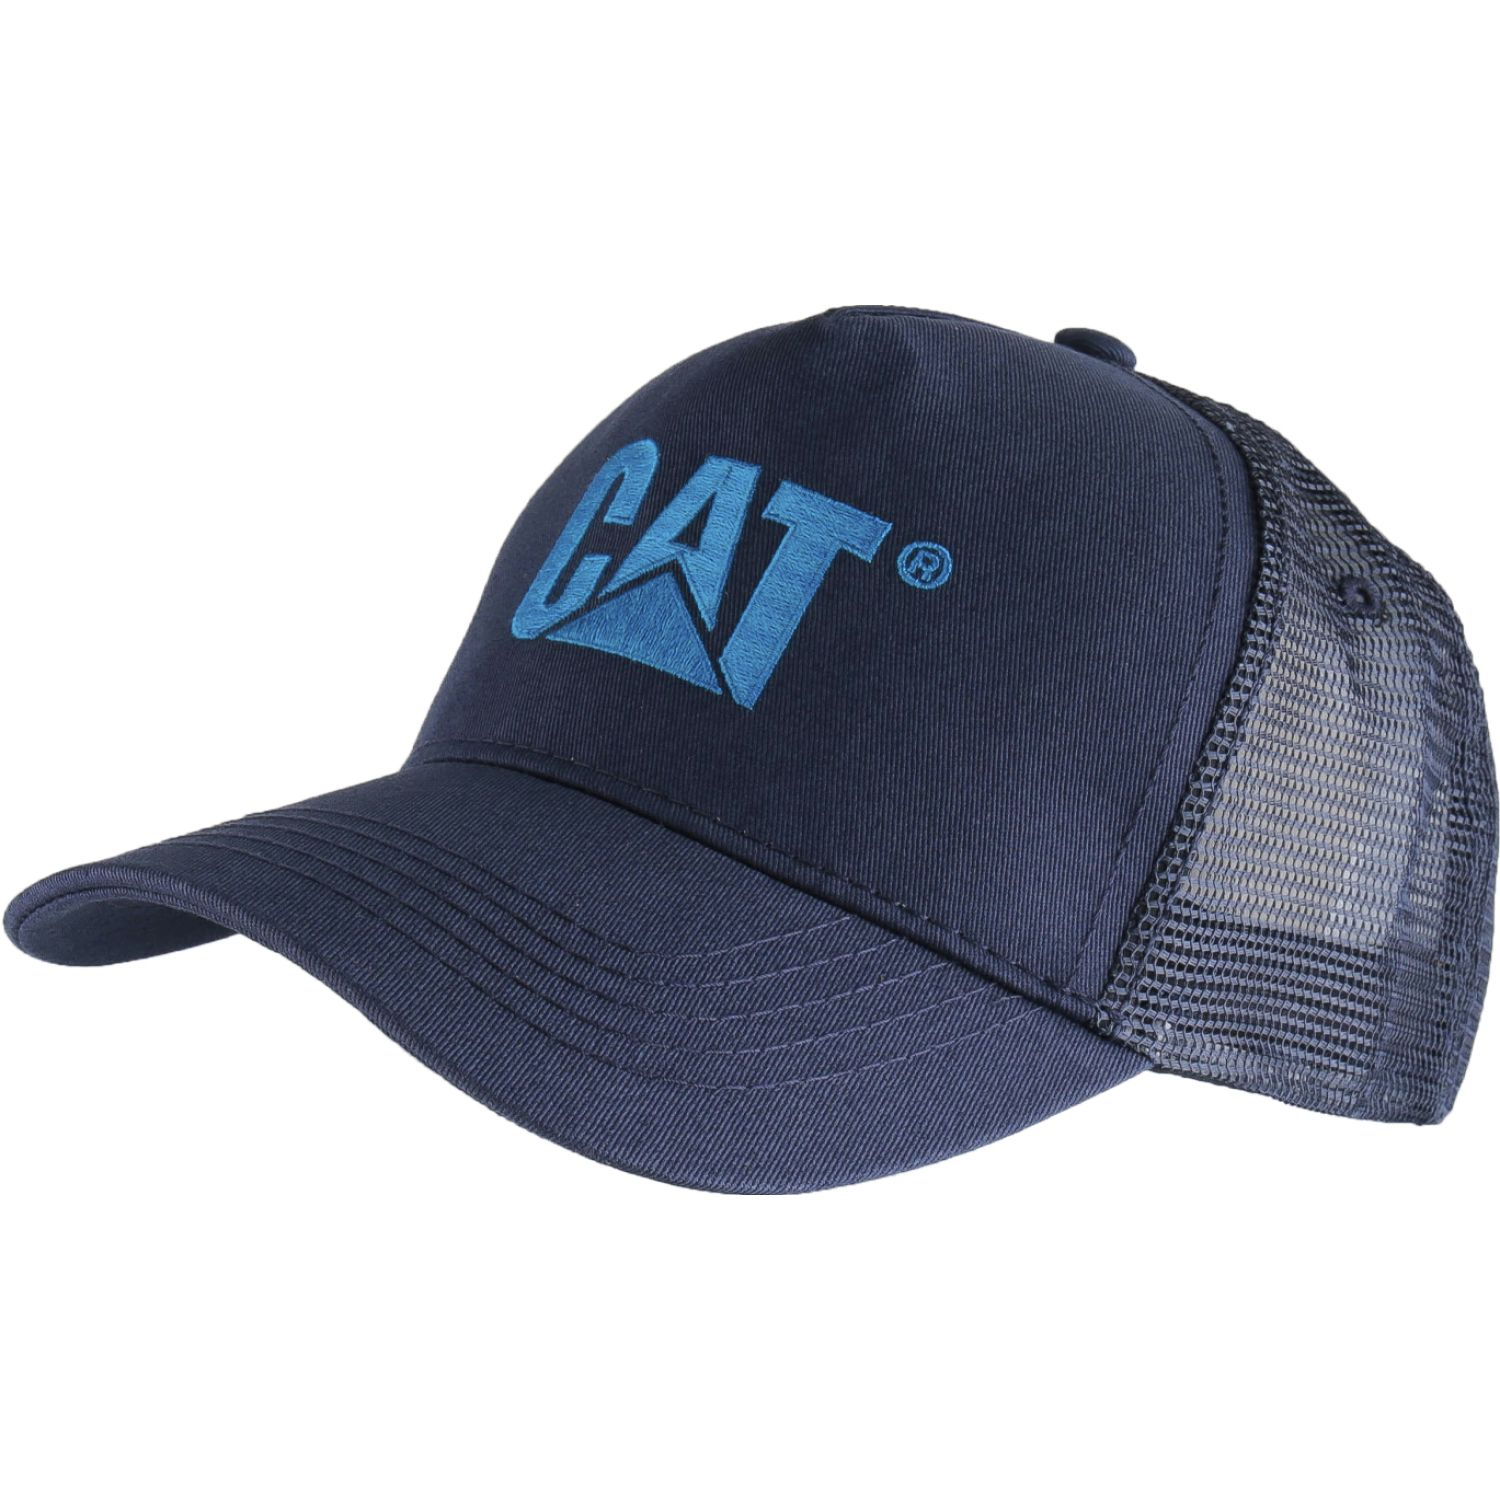 CAT Design Mark Mesh Hat Azul Gorros de Baseball